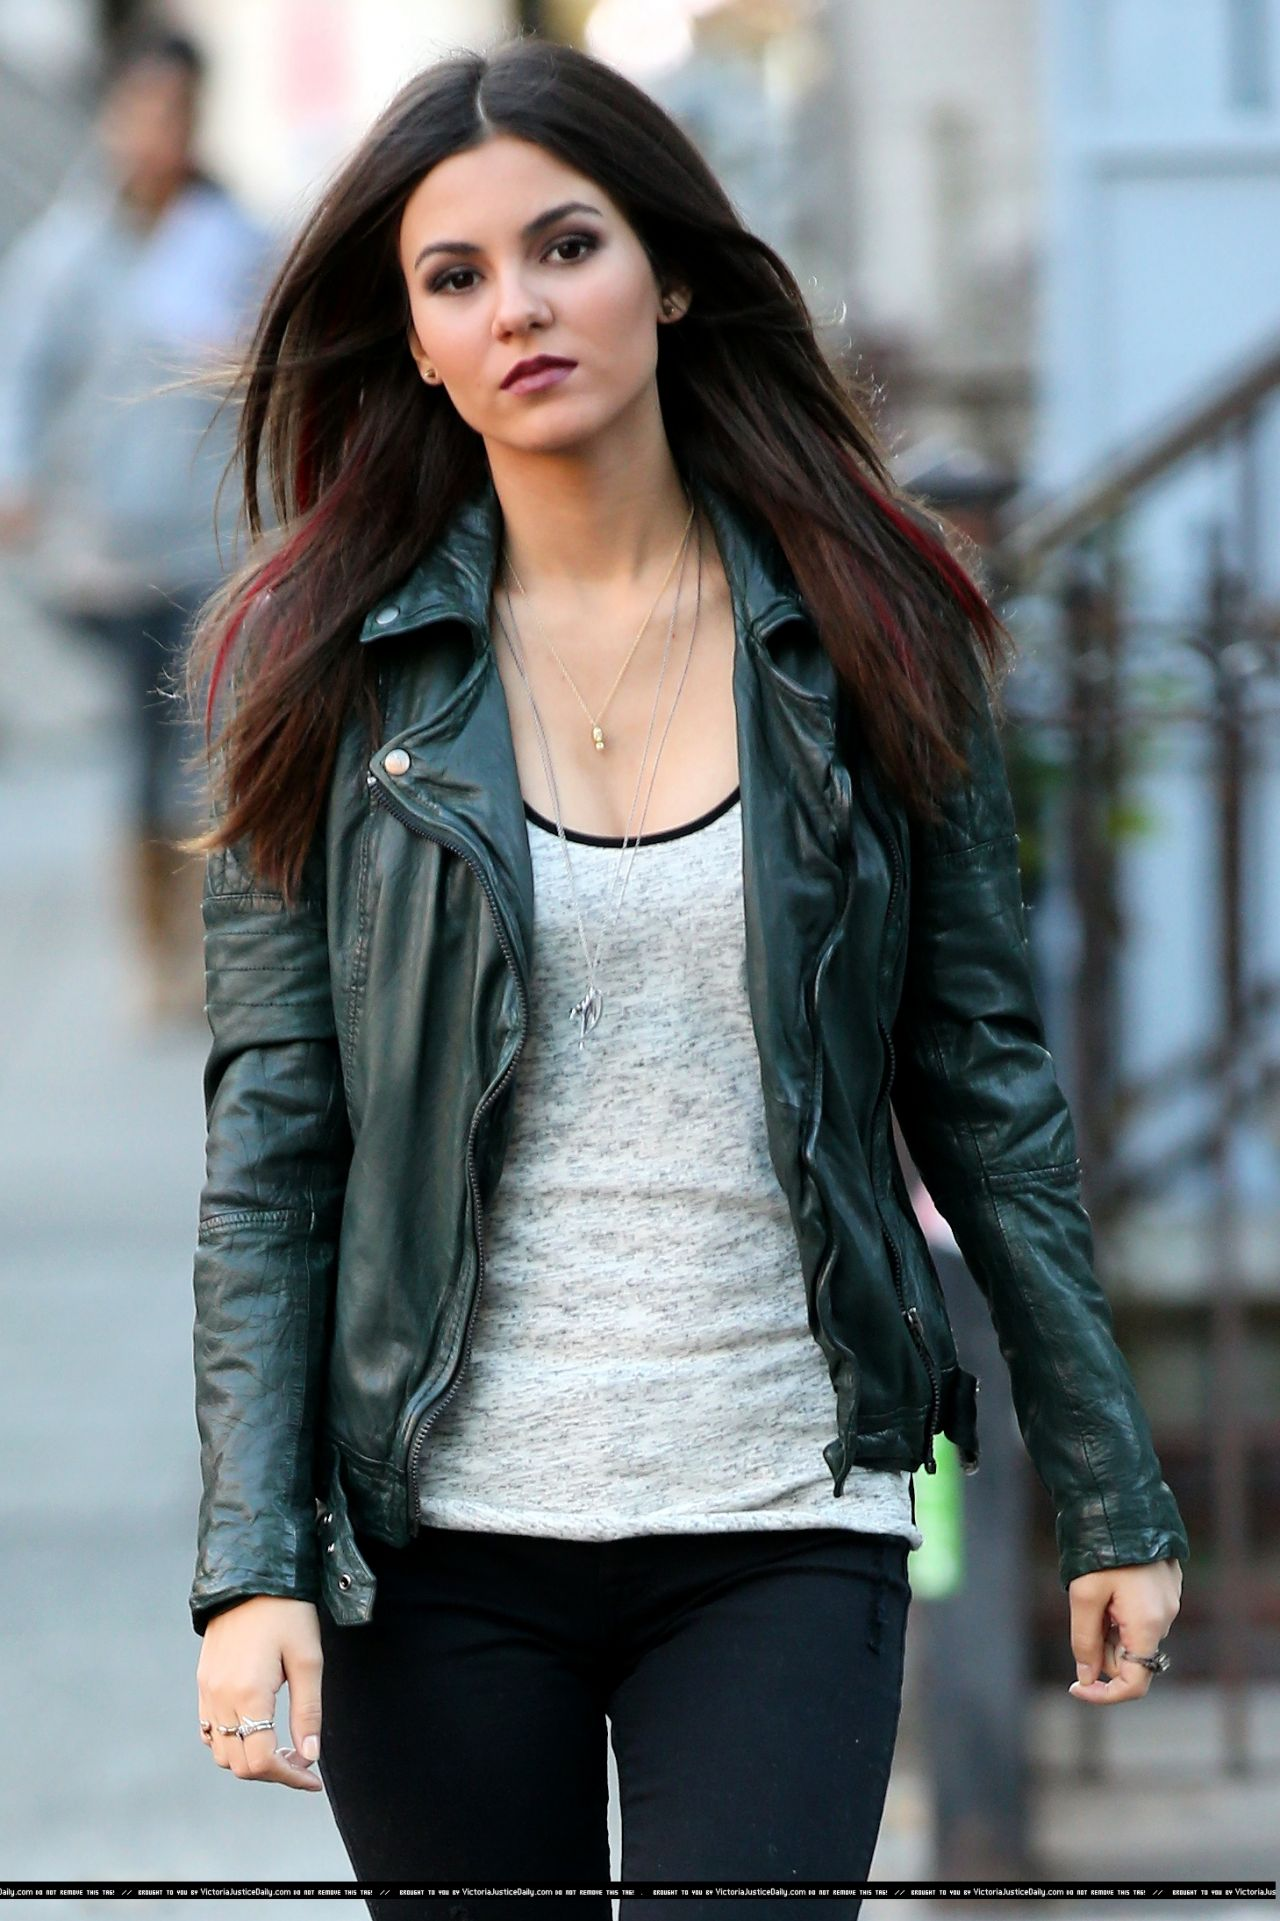 Victoria Justice Filming Eye Candy Pilot In New York City